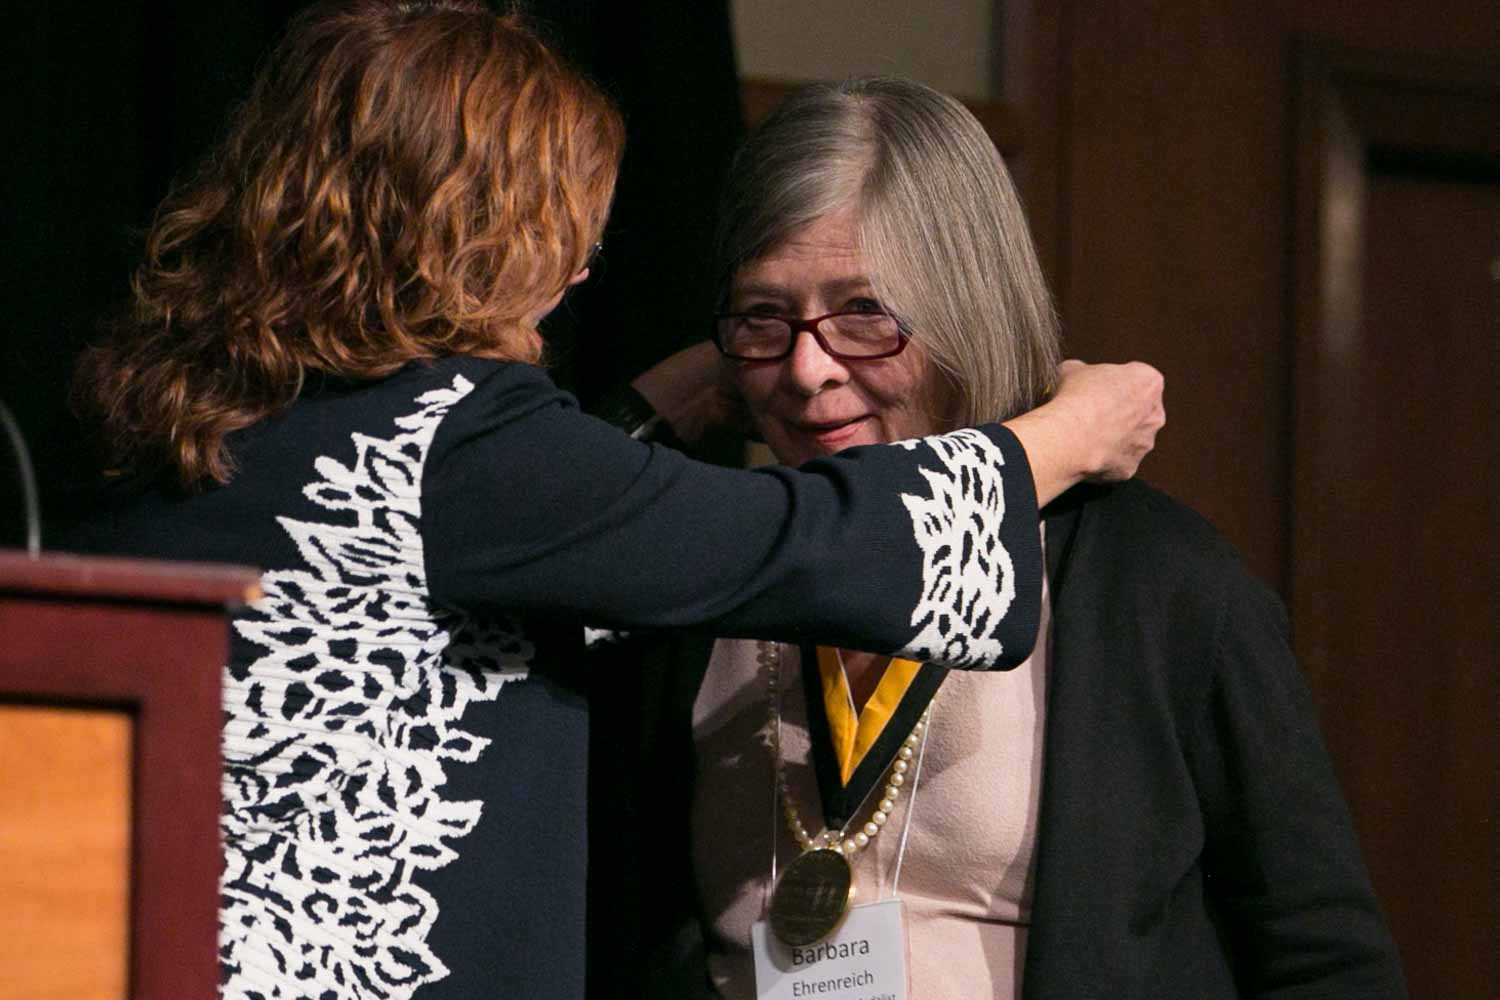 """Author and activist Barbara Ehrenreich receives her honor medal. Ehrenreich is the author of 21 books, including The New York Times best sellers, """"Nickel and Dimed: On (Not) Getting By in America"""" (2001), """"Bright-Sided: How Positive Thinking Is Undermining America"""" (2010), and """"Living with a Wild God"""" (2014). Ehrenreich is also a frequent contributor to The New York Times, Harpers, The Progressive magazine, and Time magazine, and has appeared on """"Oprah, The Daily Show."""""""